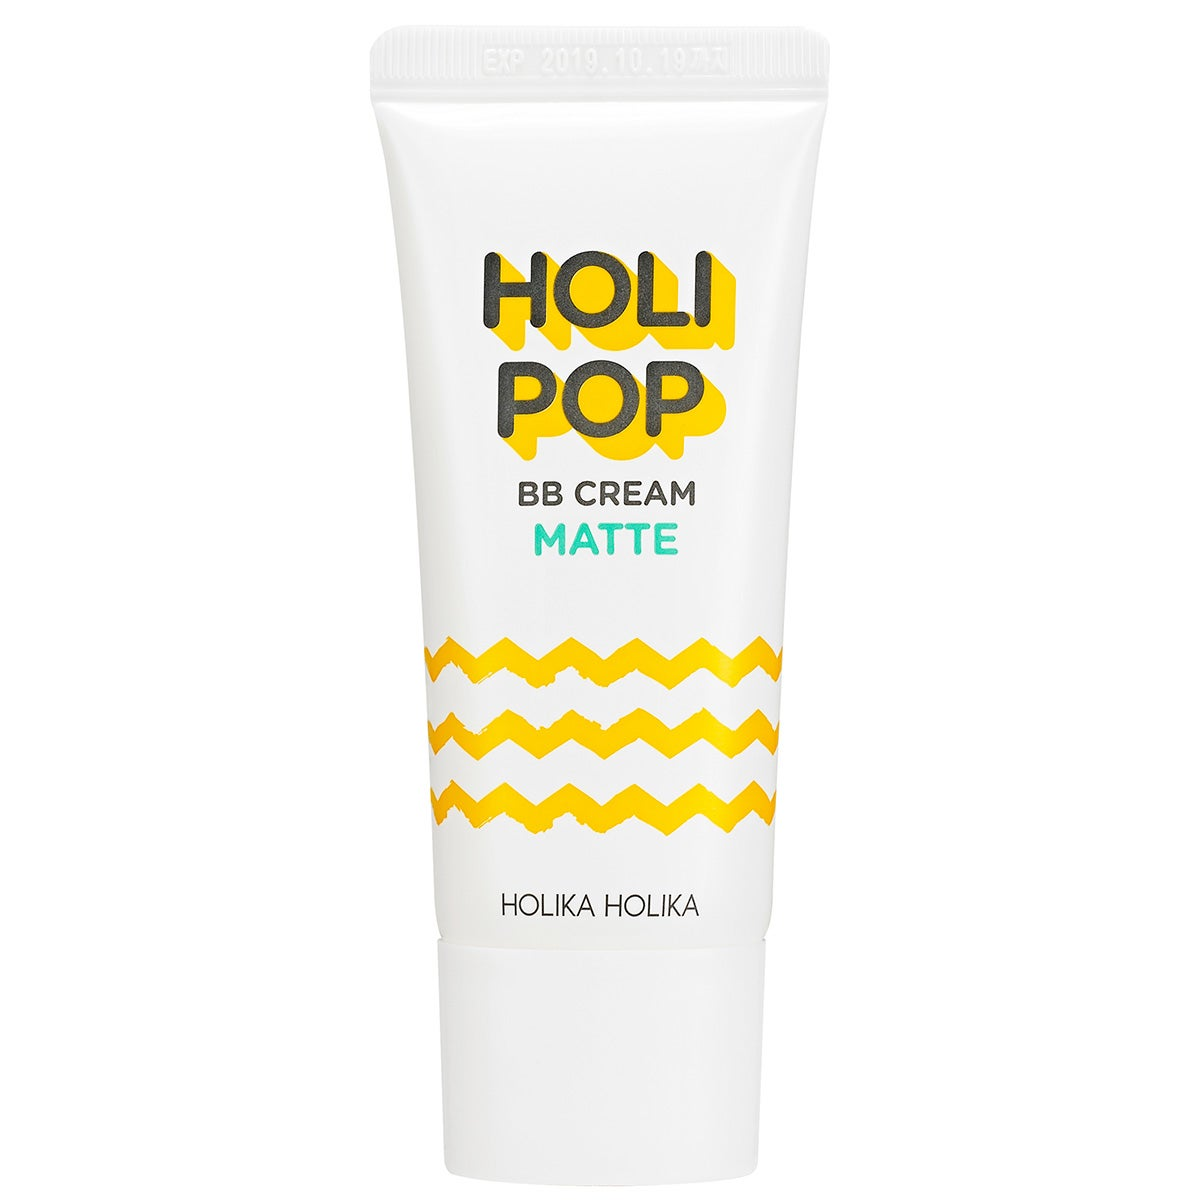 Holi Pop BB Cream Matte, 30 ml Holika Holika Foundation